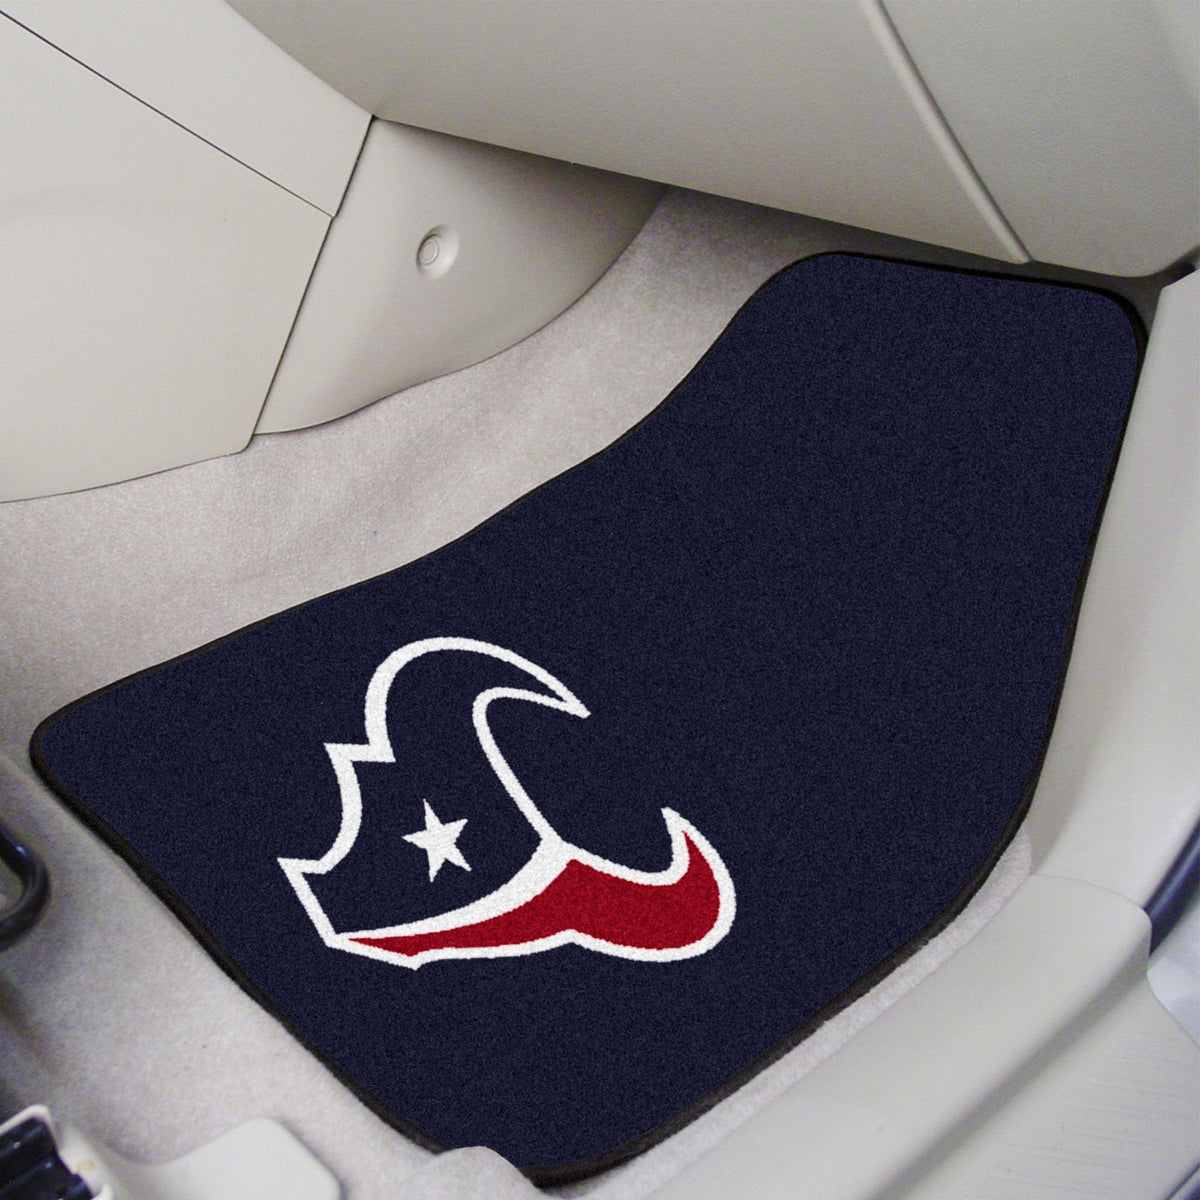 "NFL - 2-pc Carpet Car Mat Set, 17"" x 27"" NFL Mats, Front Car Mats, 2-pc Carpet Car Mat Set, NFL, Auto Fan Mats Houston Texans"